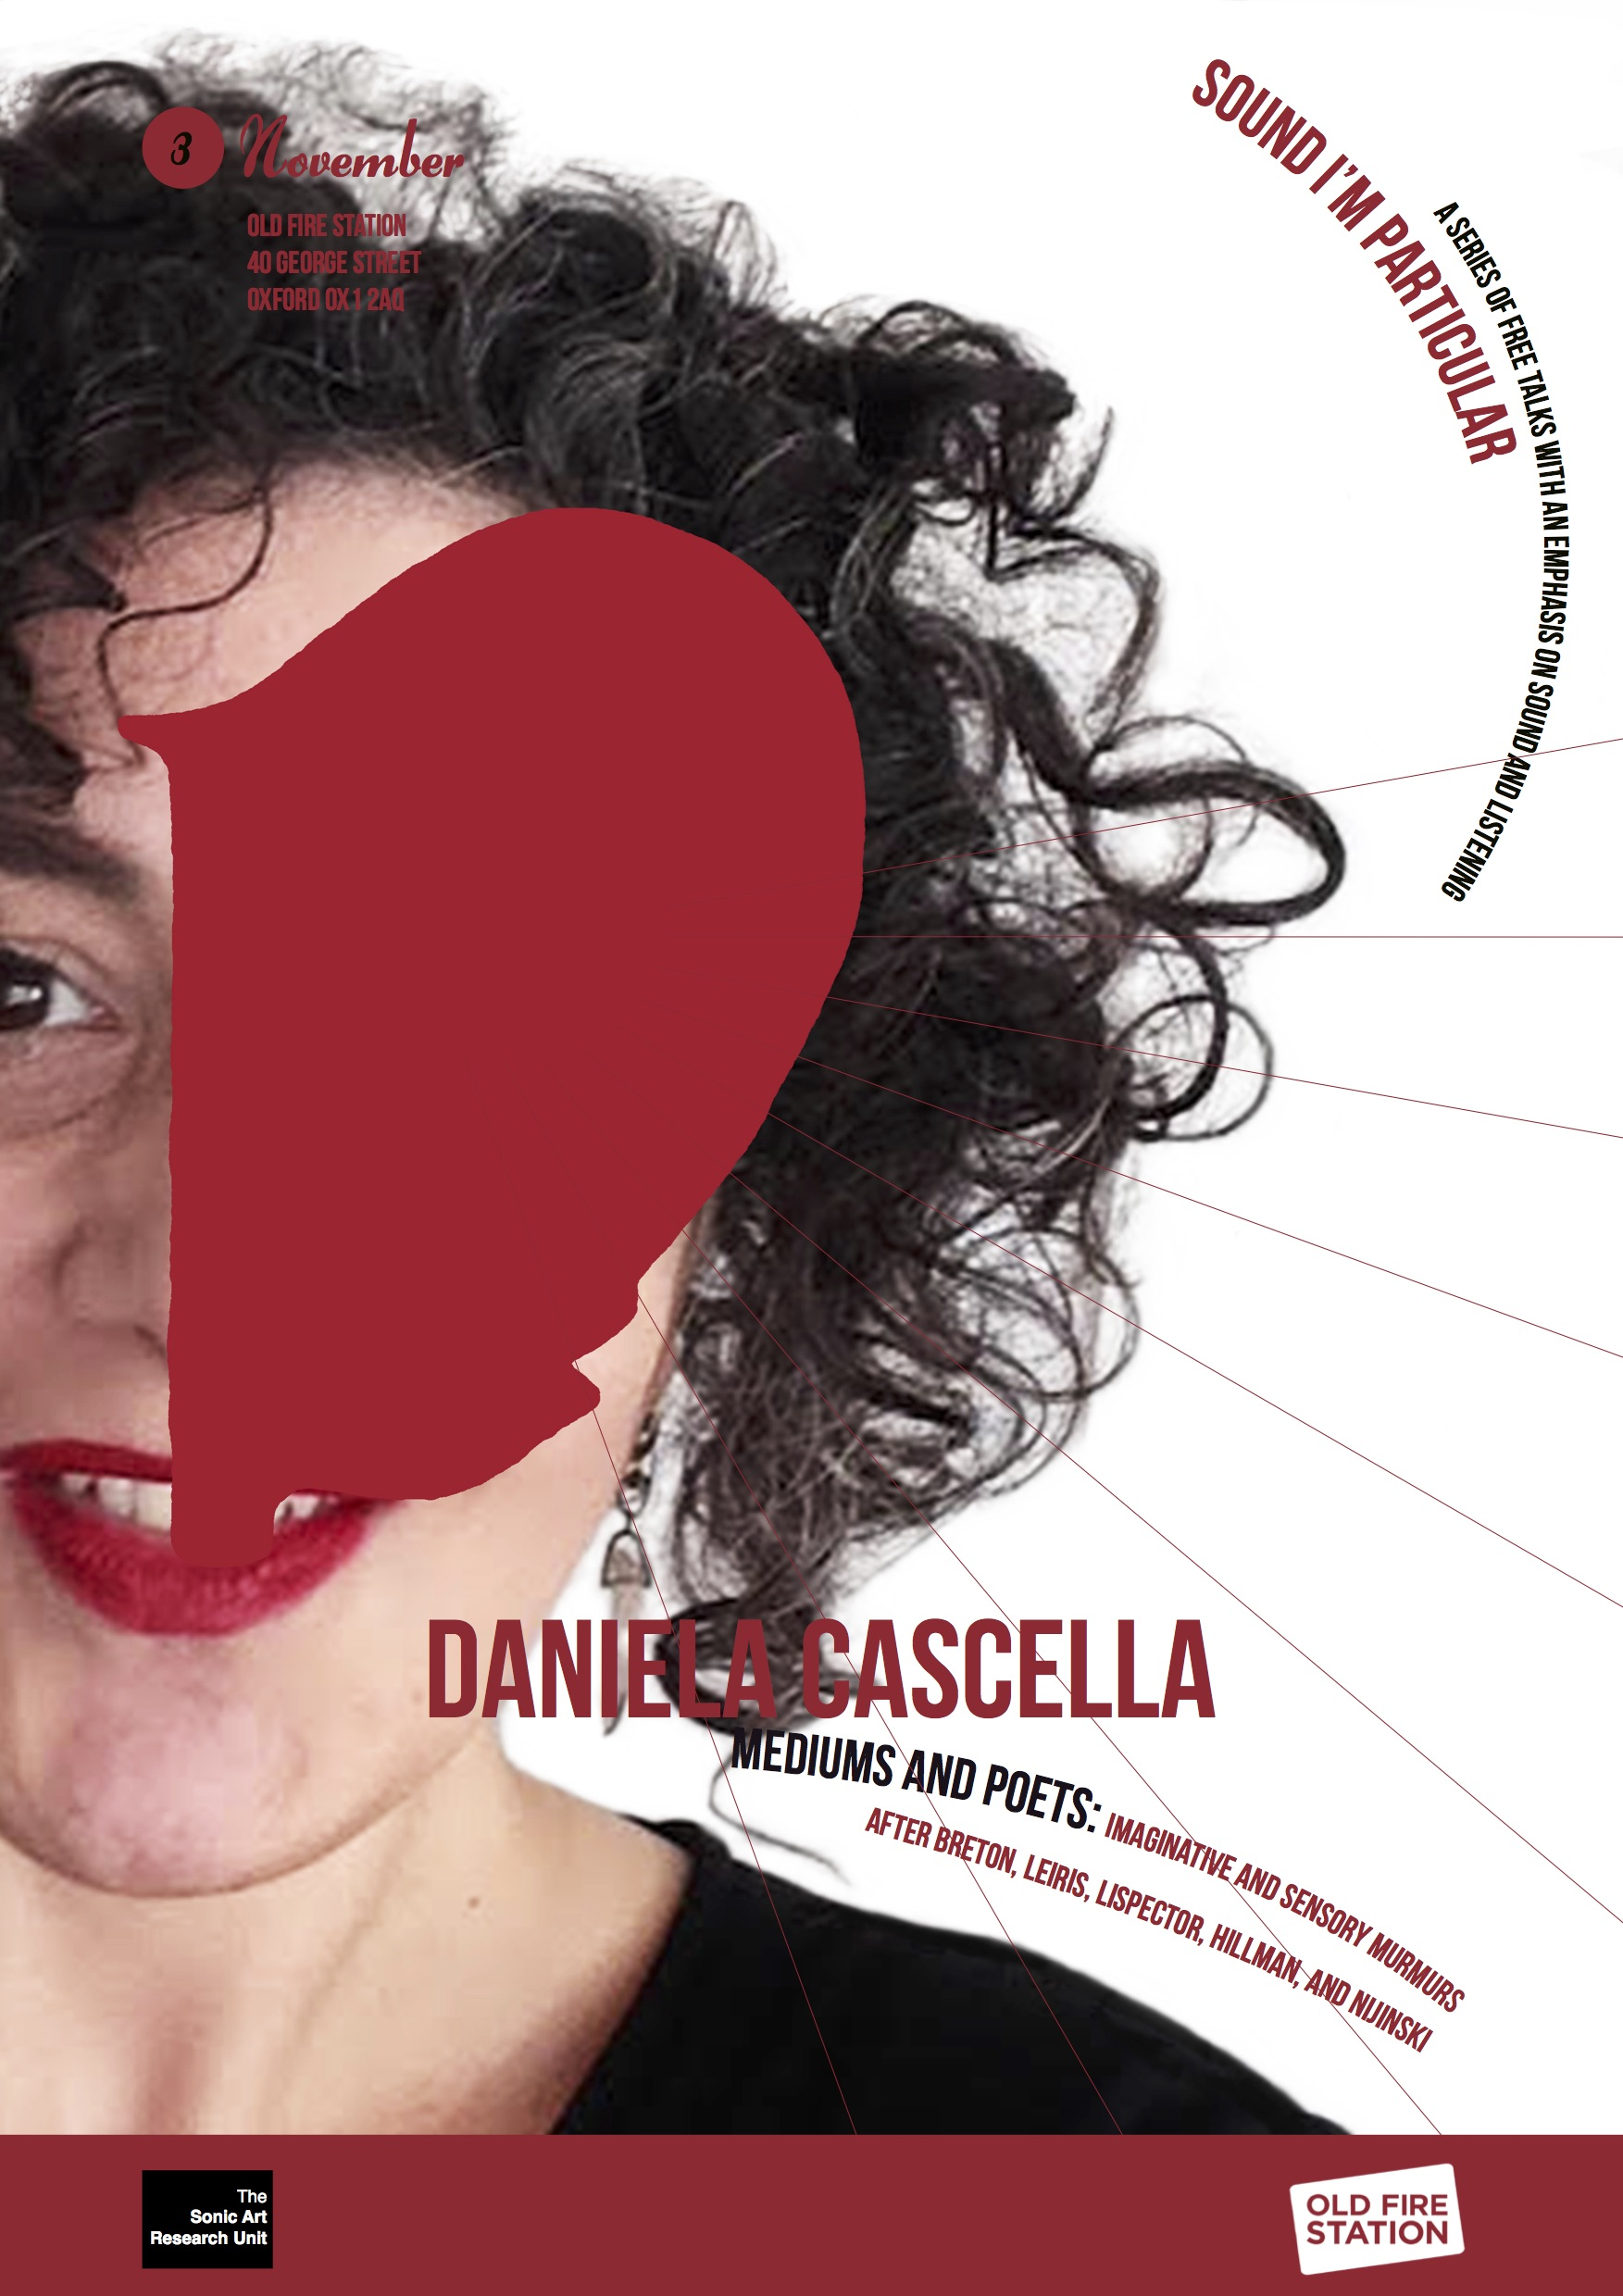 Sound I'm Particular 2. Daniela Cascella, Imaginative and Sensory Murmurs. November 3rd.